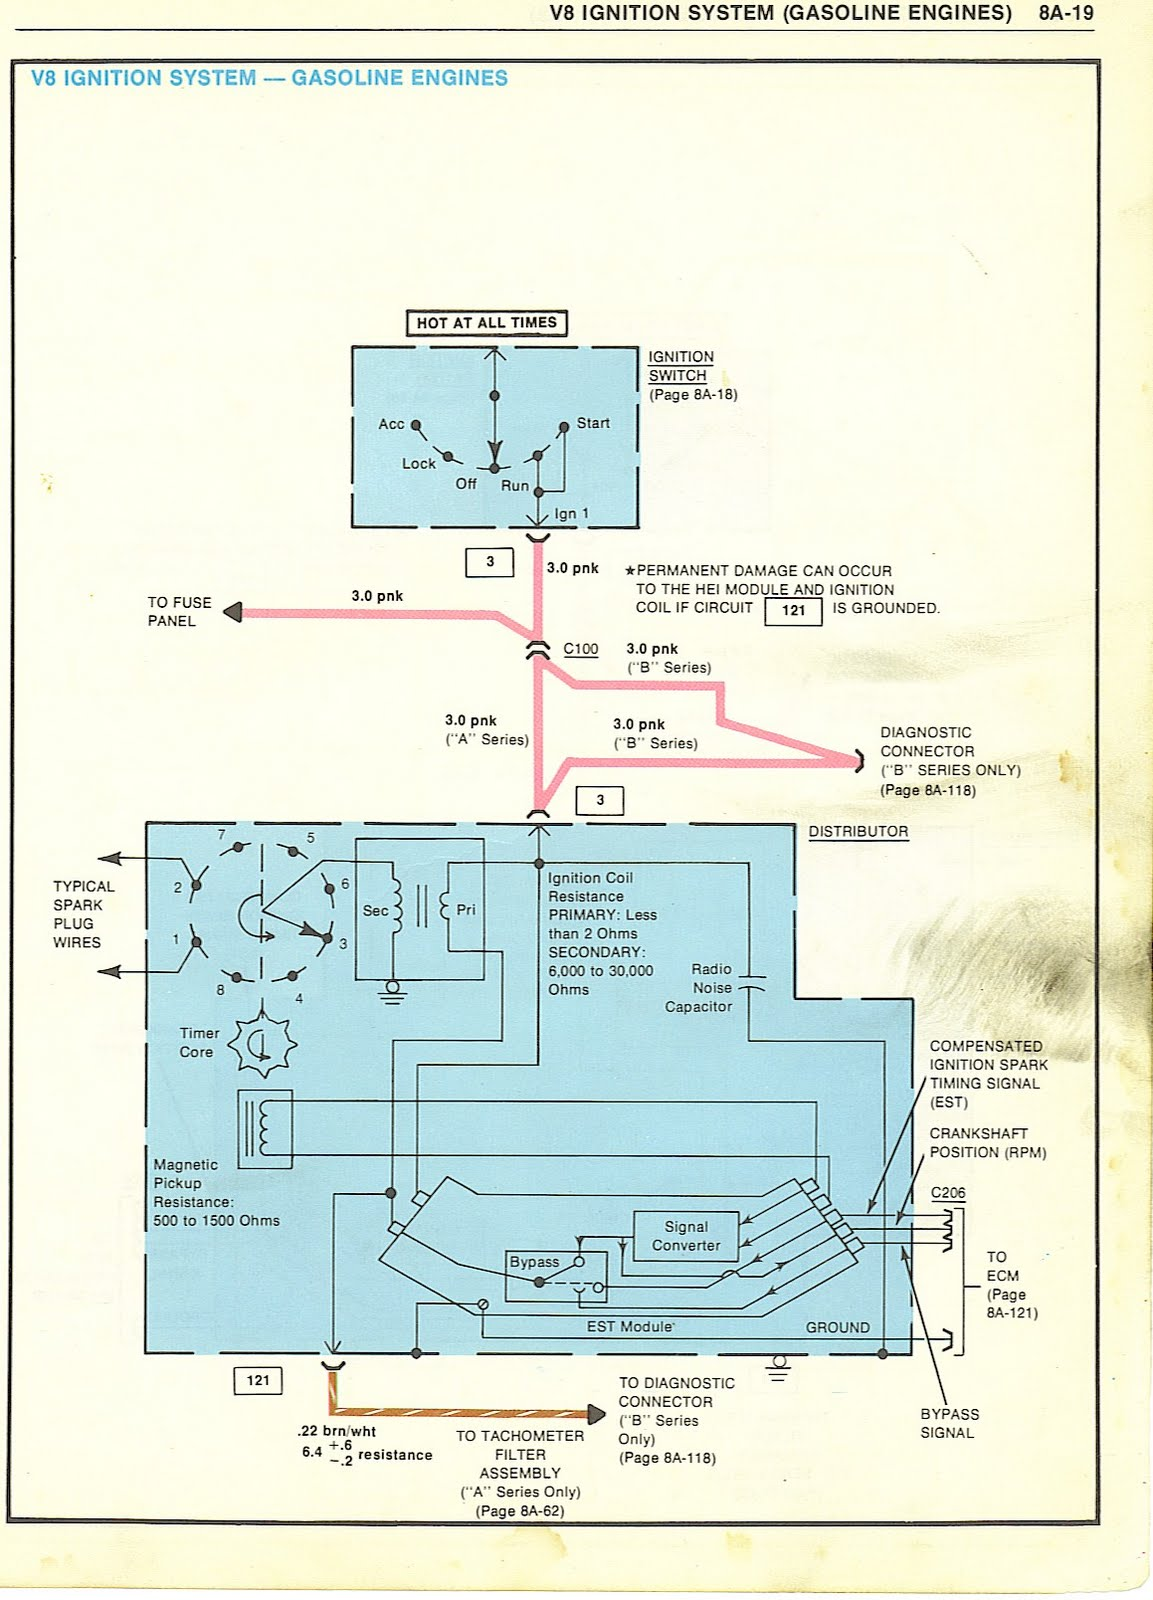 free auto wiring diagram: may 2011 1979 sportster wiring diagram 1979 malibu wiring diagram #13